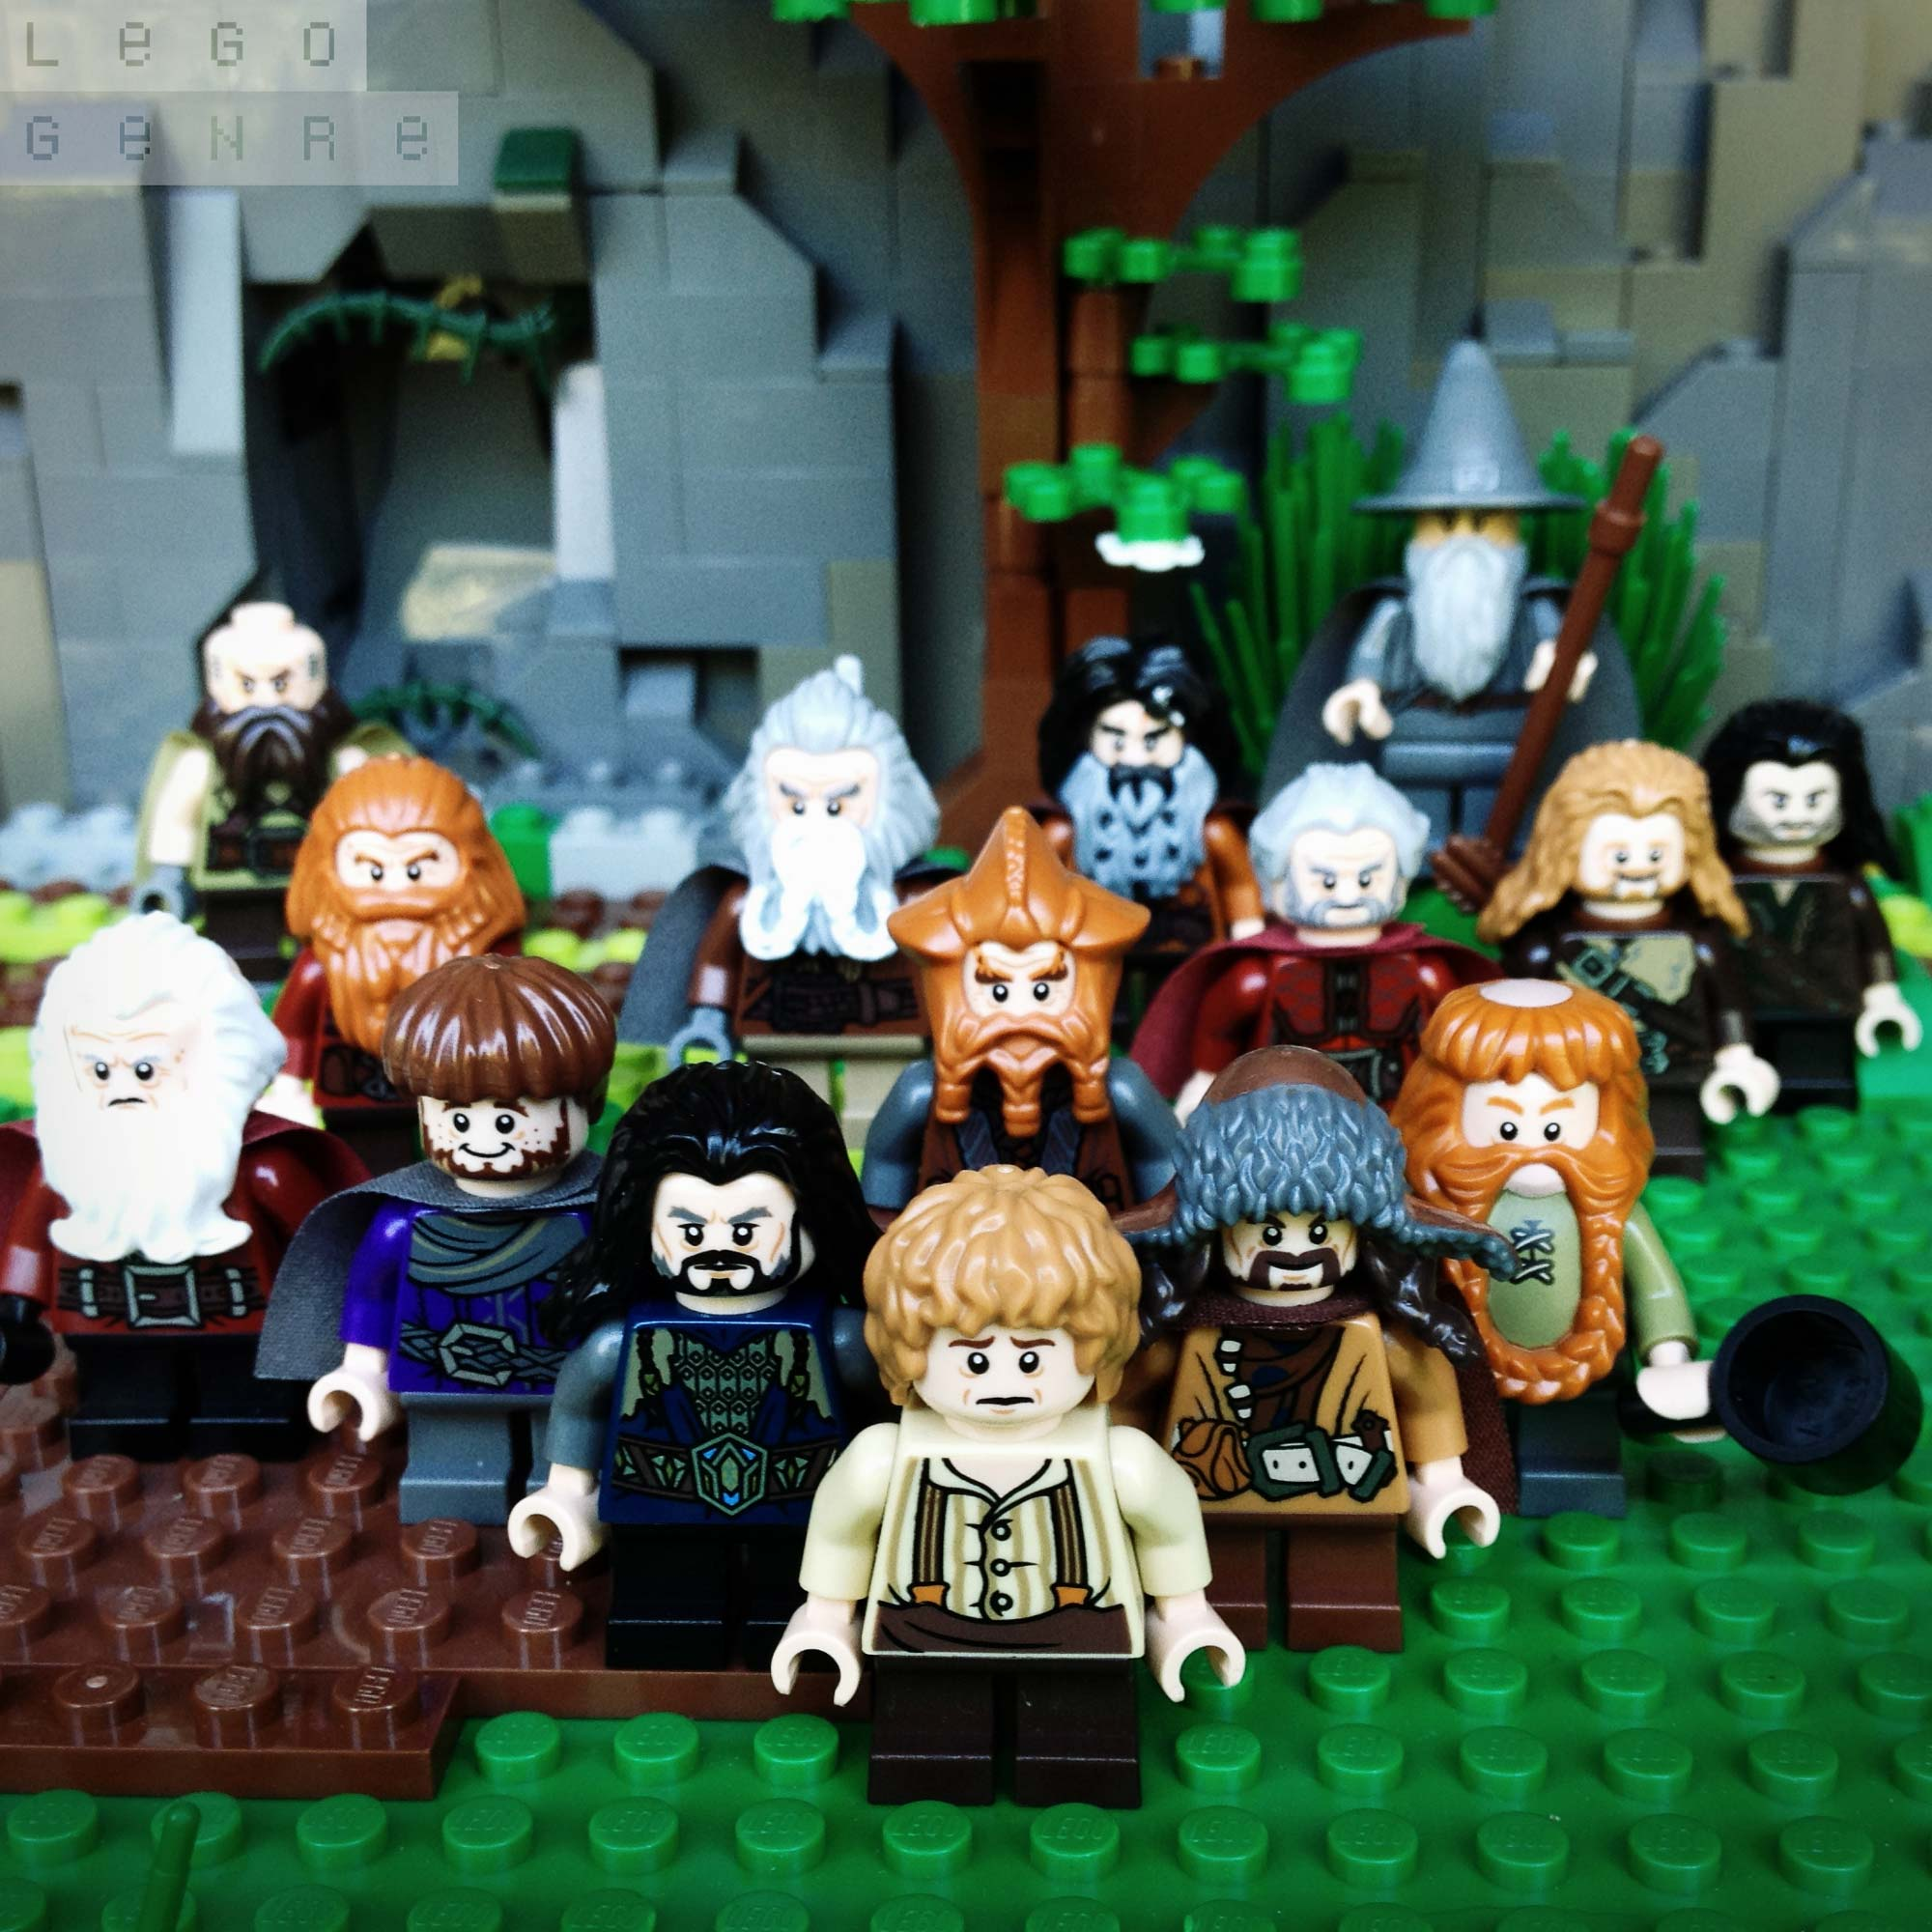 LegoGenre 00294: Thorin And Company